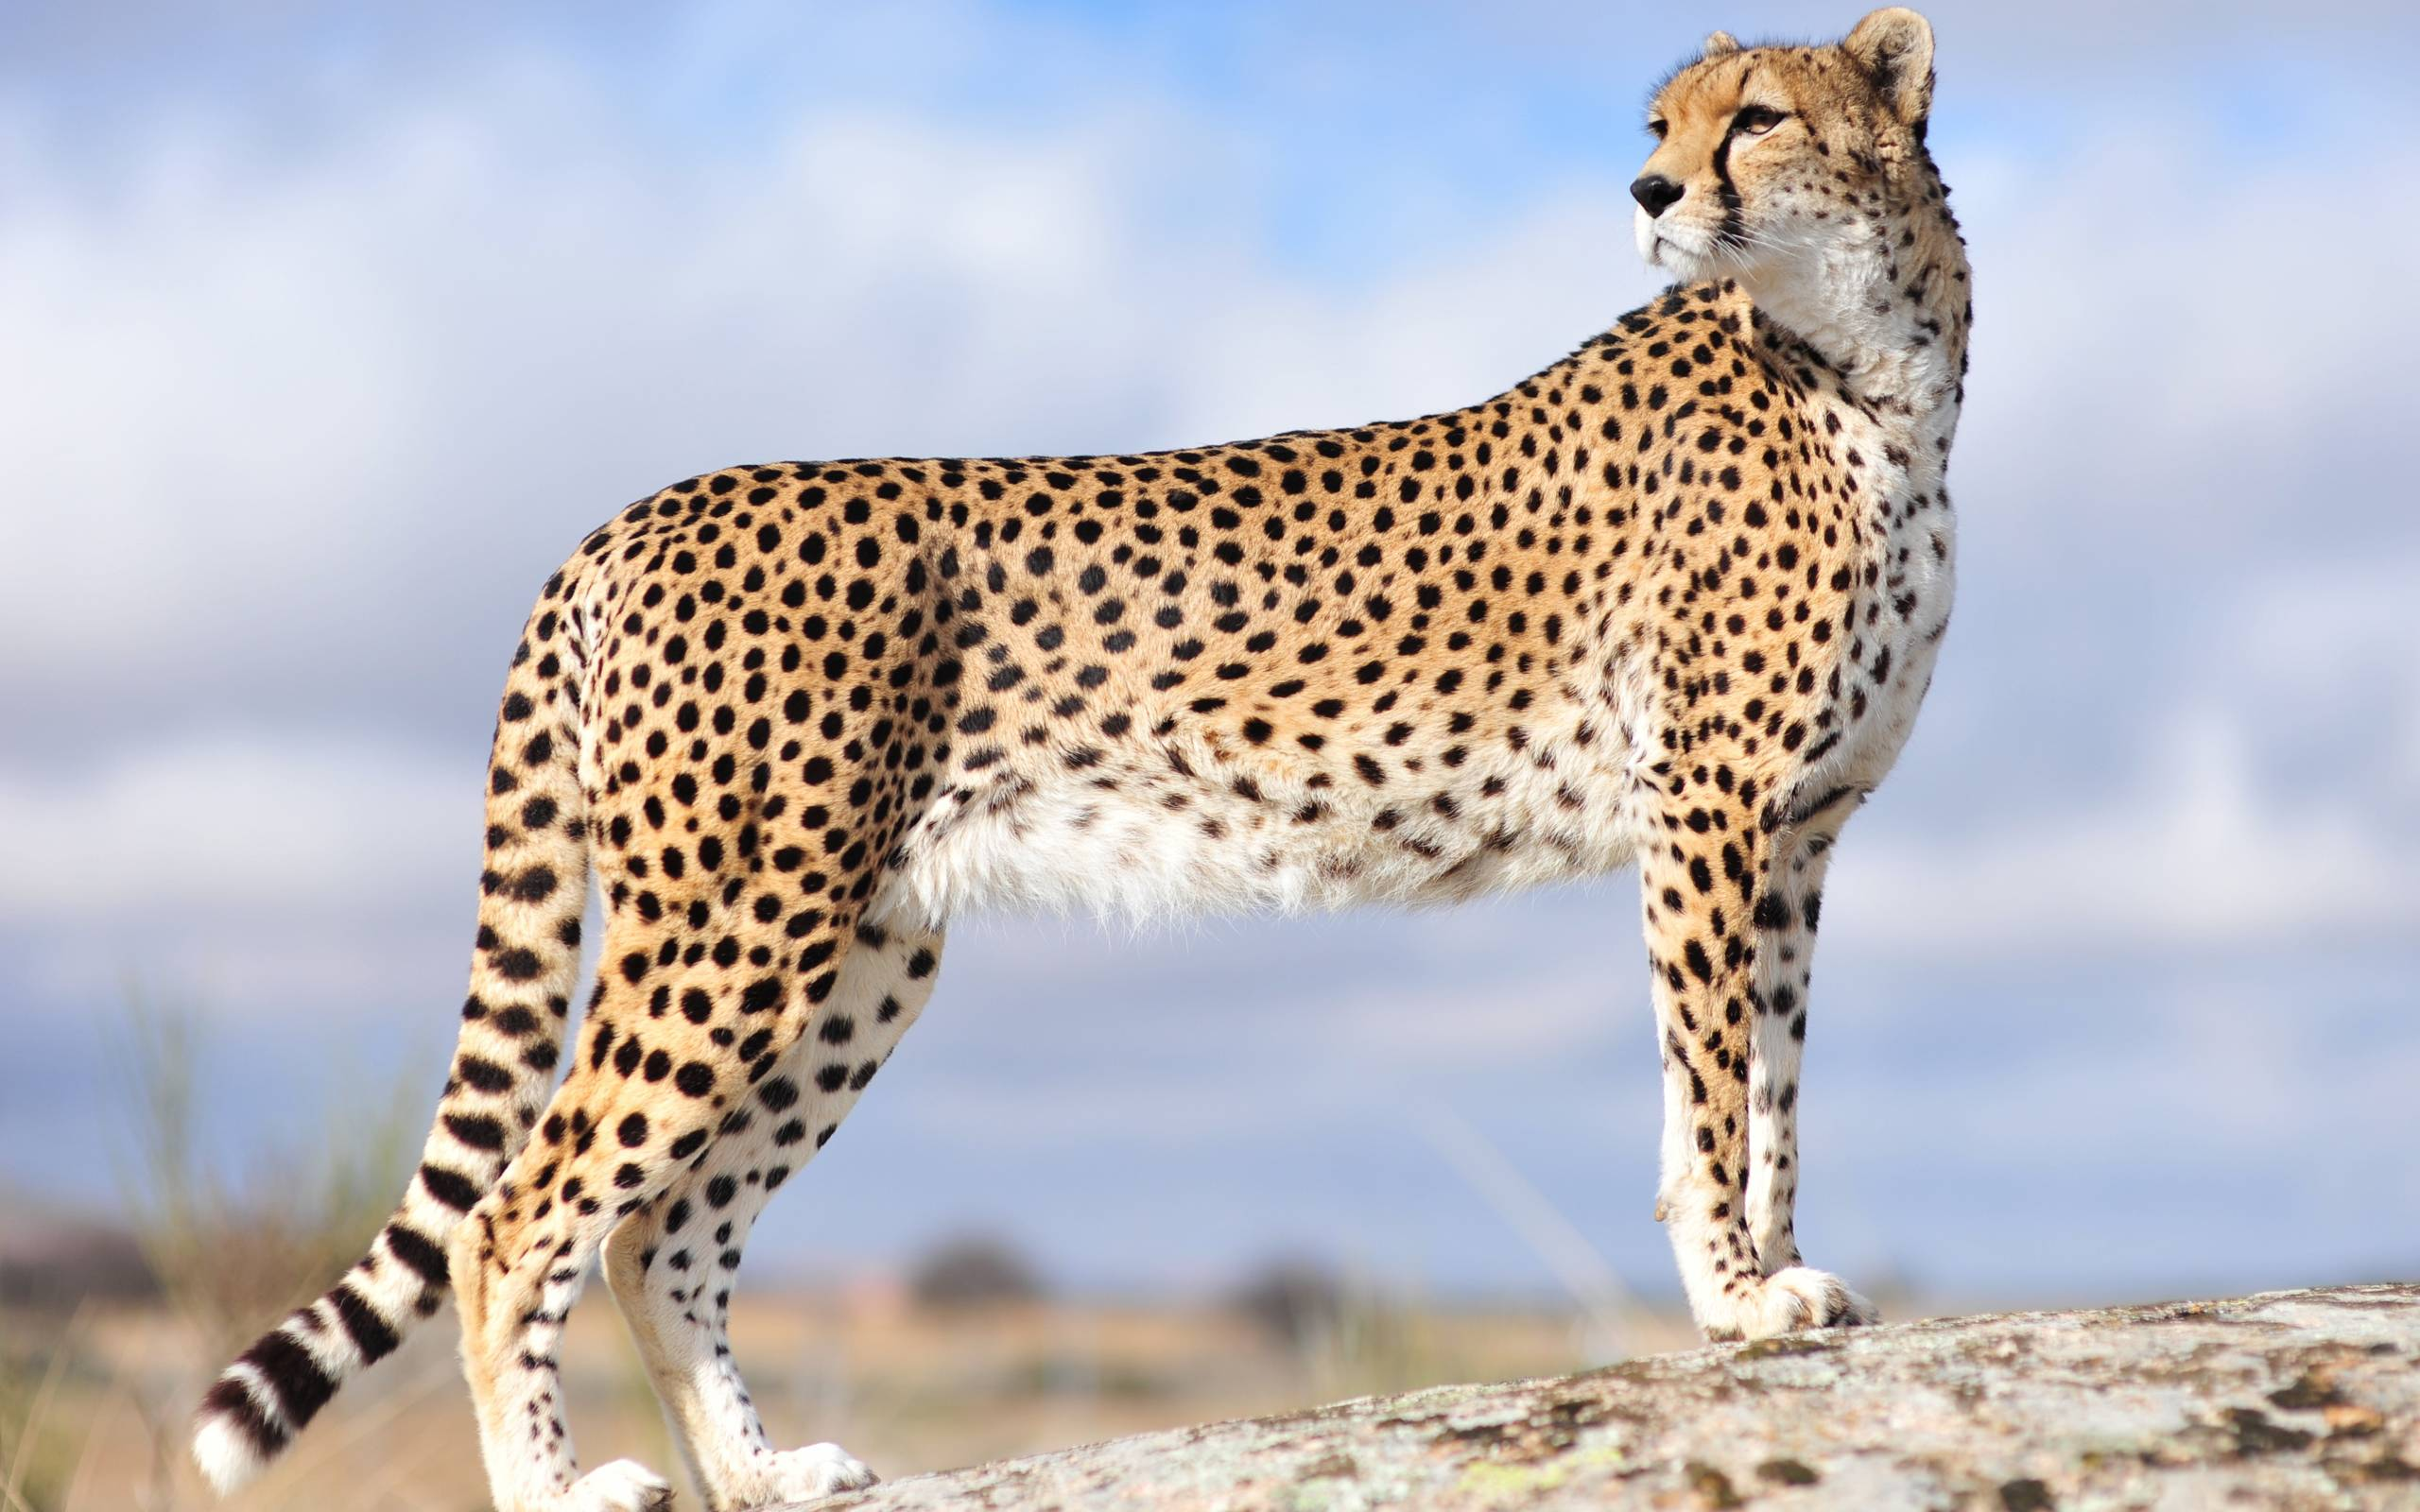 Cheetah Wallpapers HD - Wallpaper Cave